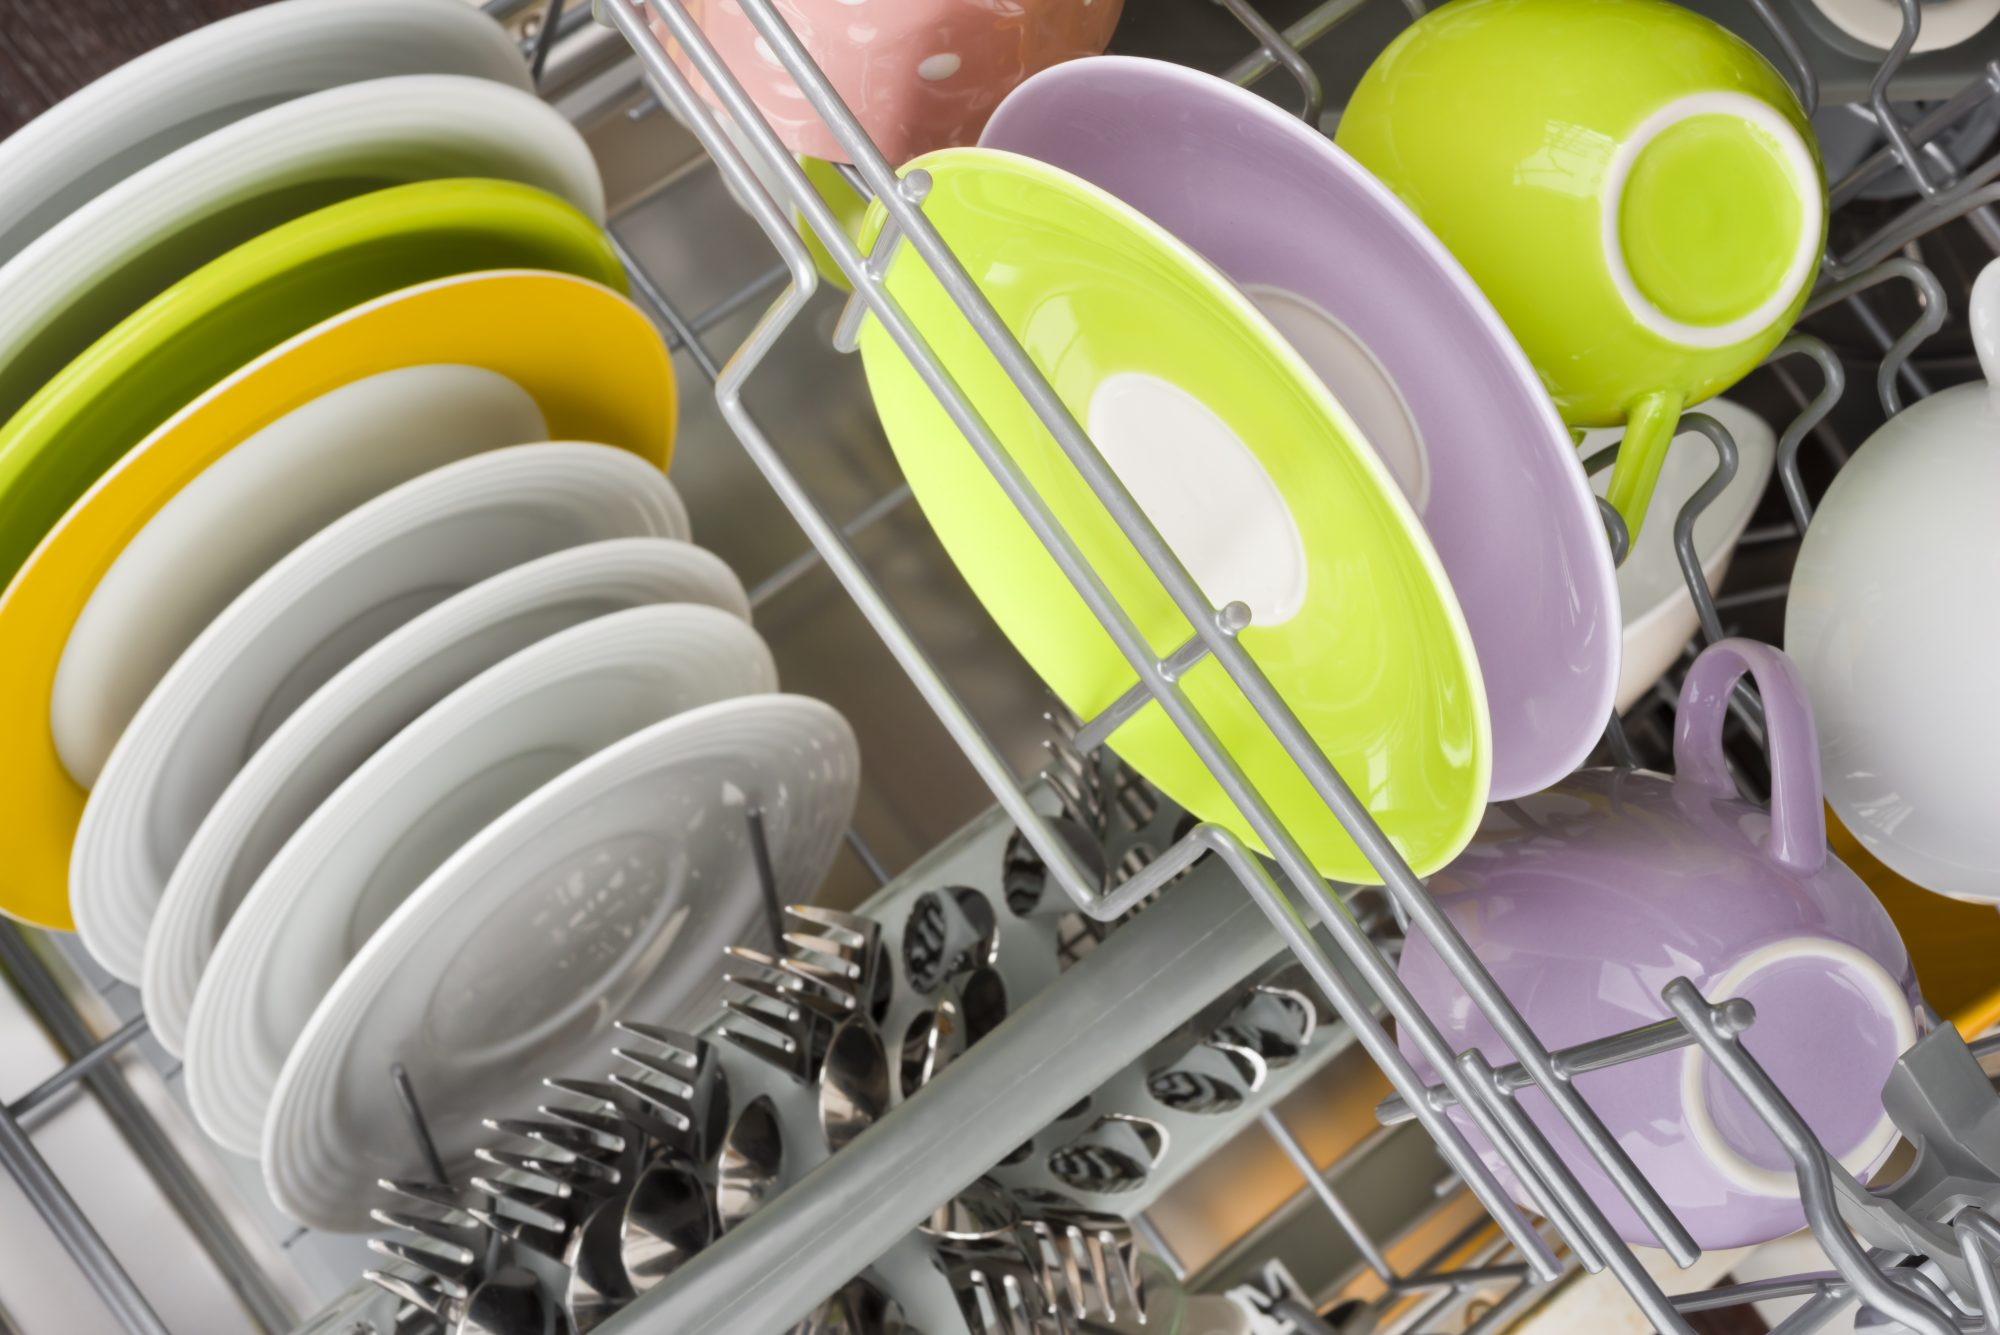 getty colorful dishes